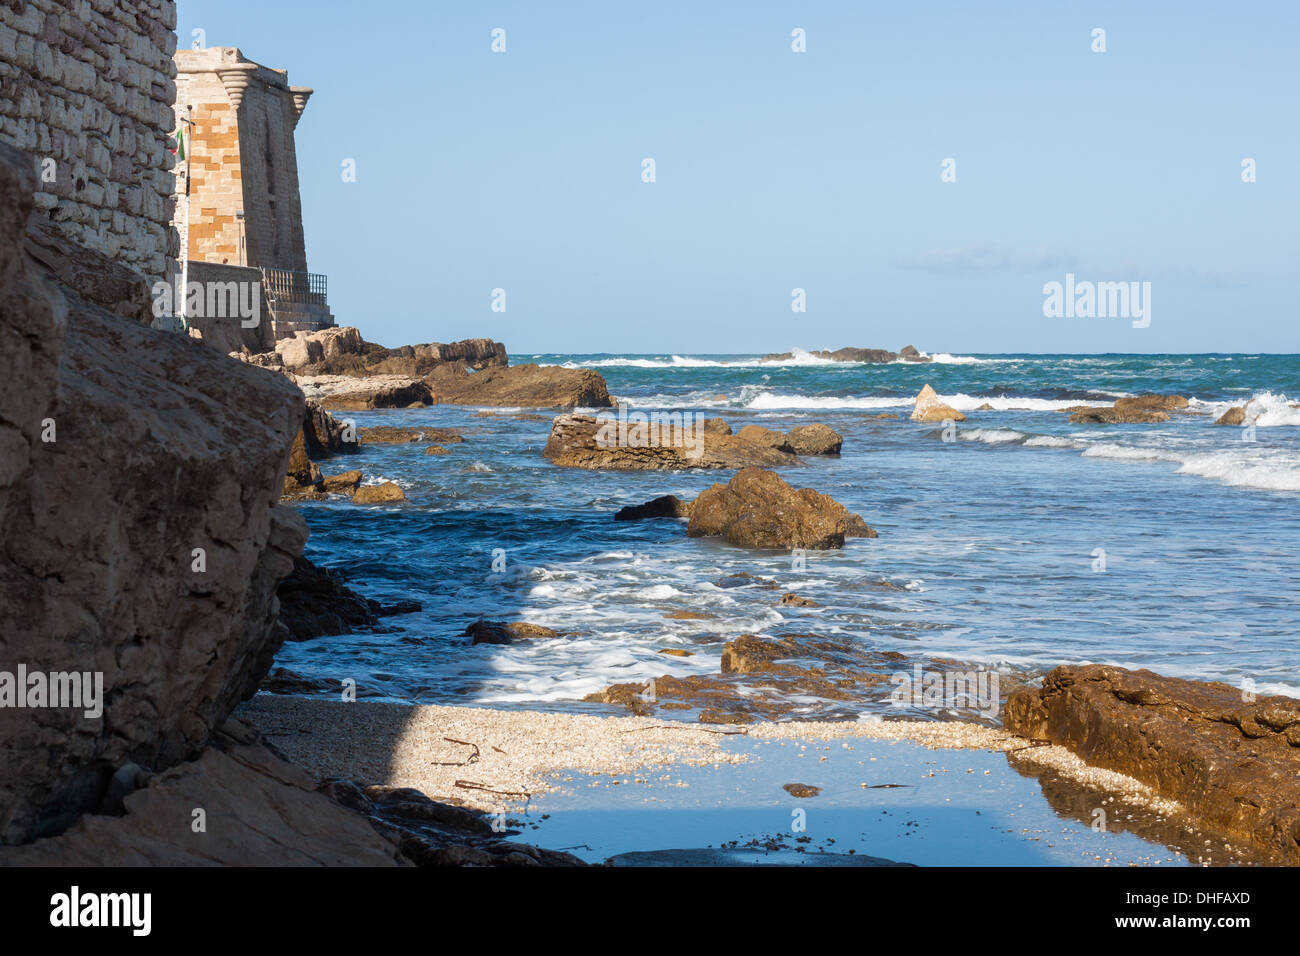 sea wall waves beach stock photos   sea wall waves beach picture codes for bloxburg bathroom picture for bathroom wall